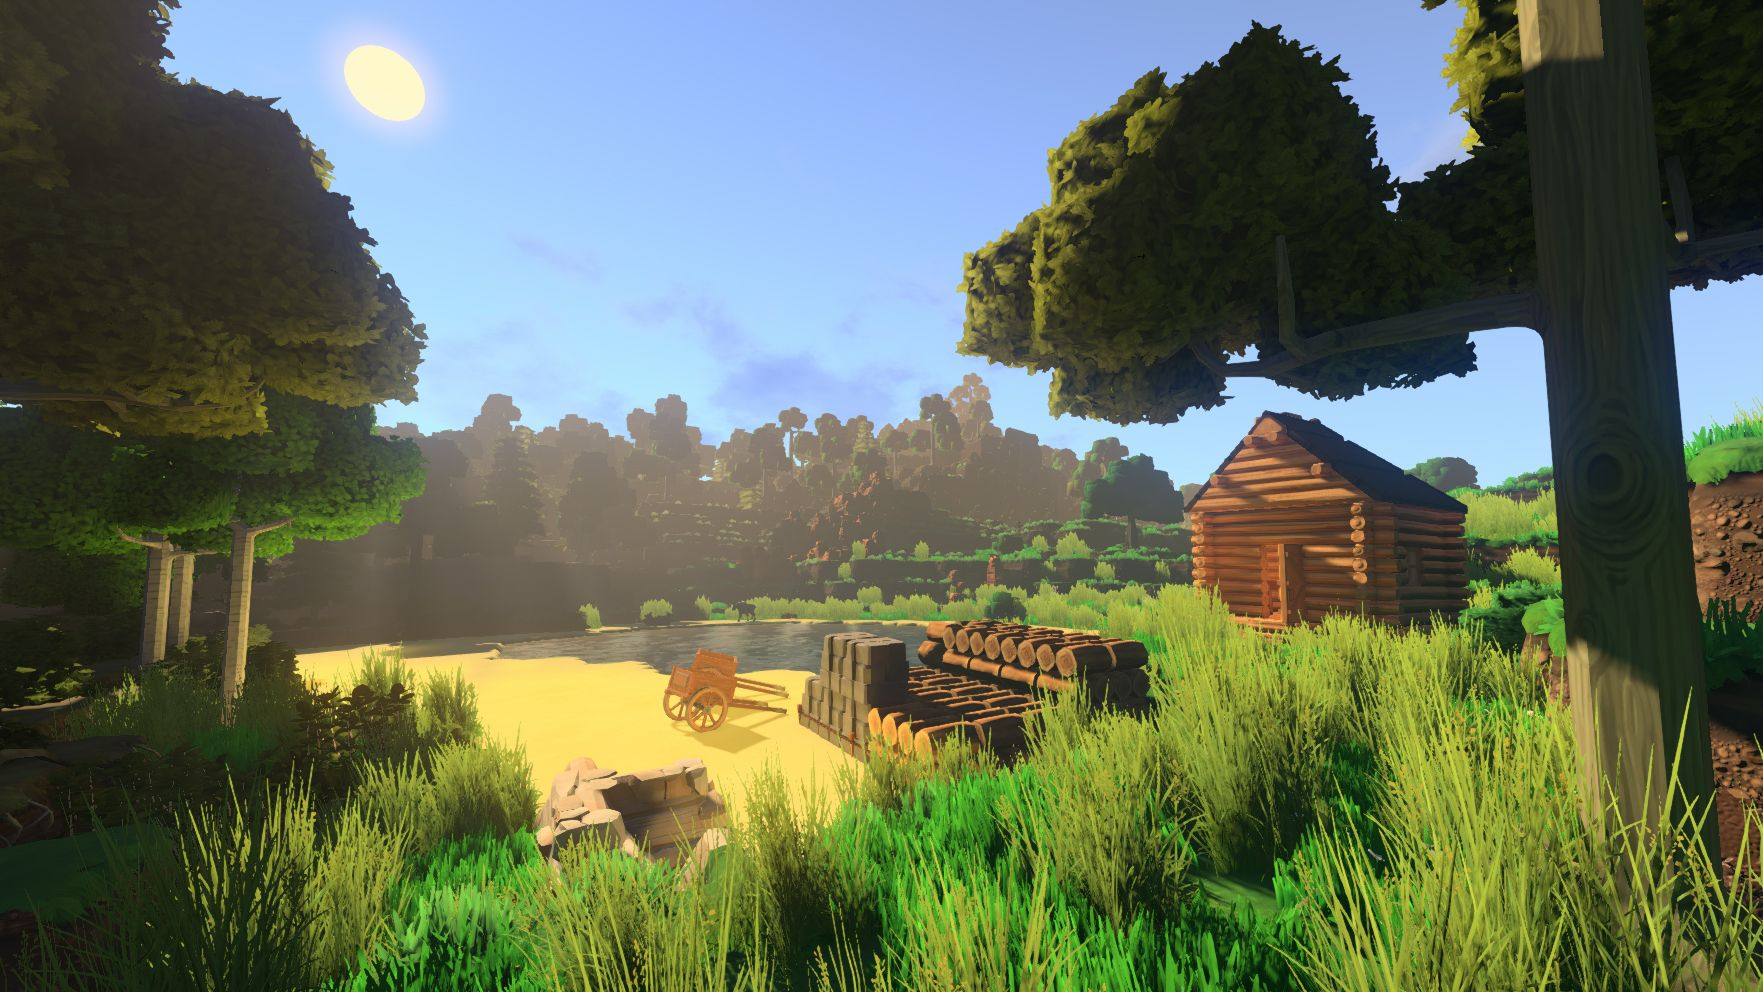 The Benefits of Constructionist Gaming